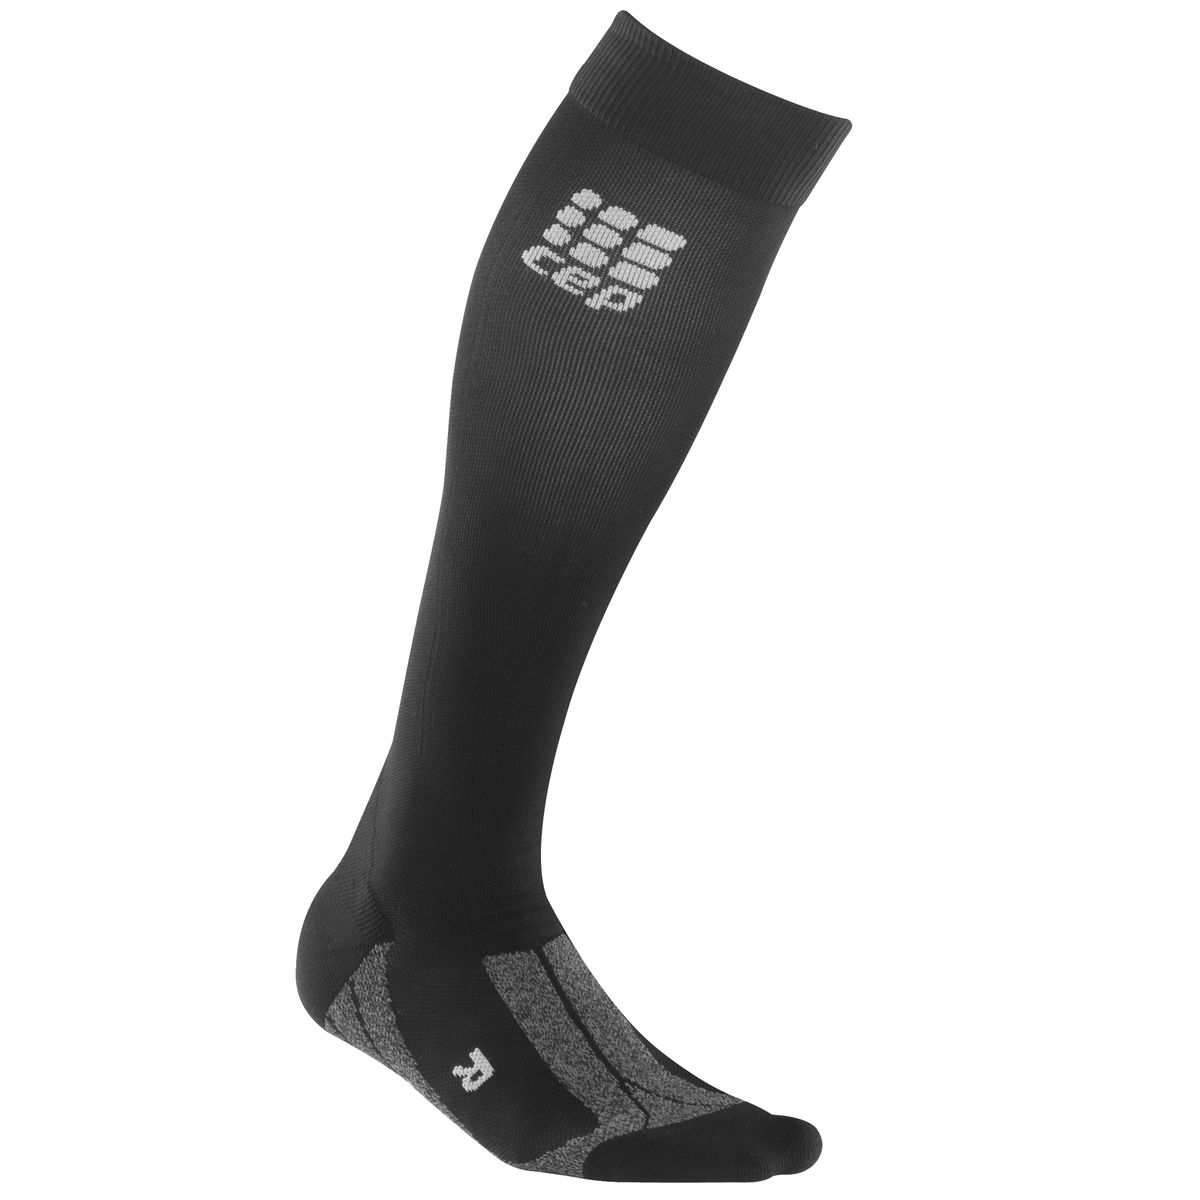 Recovery chaussettes de compression homme